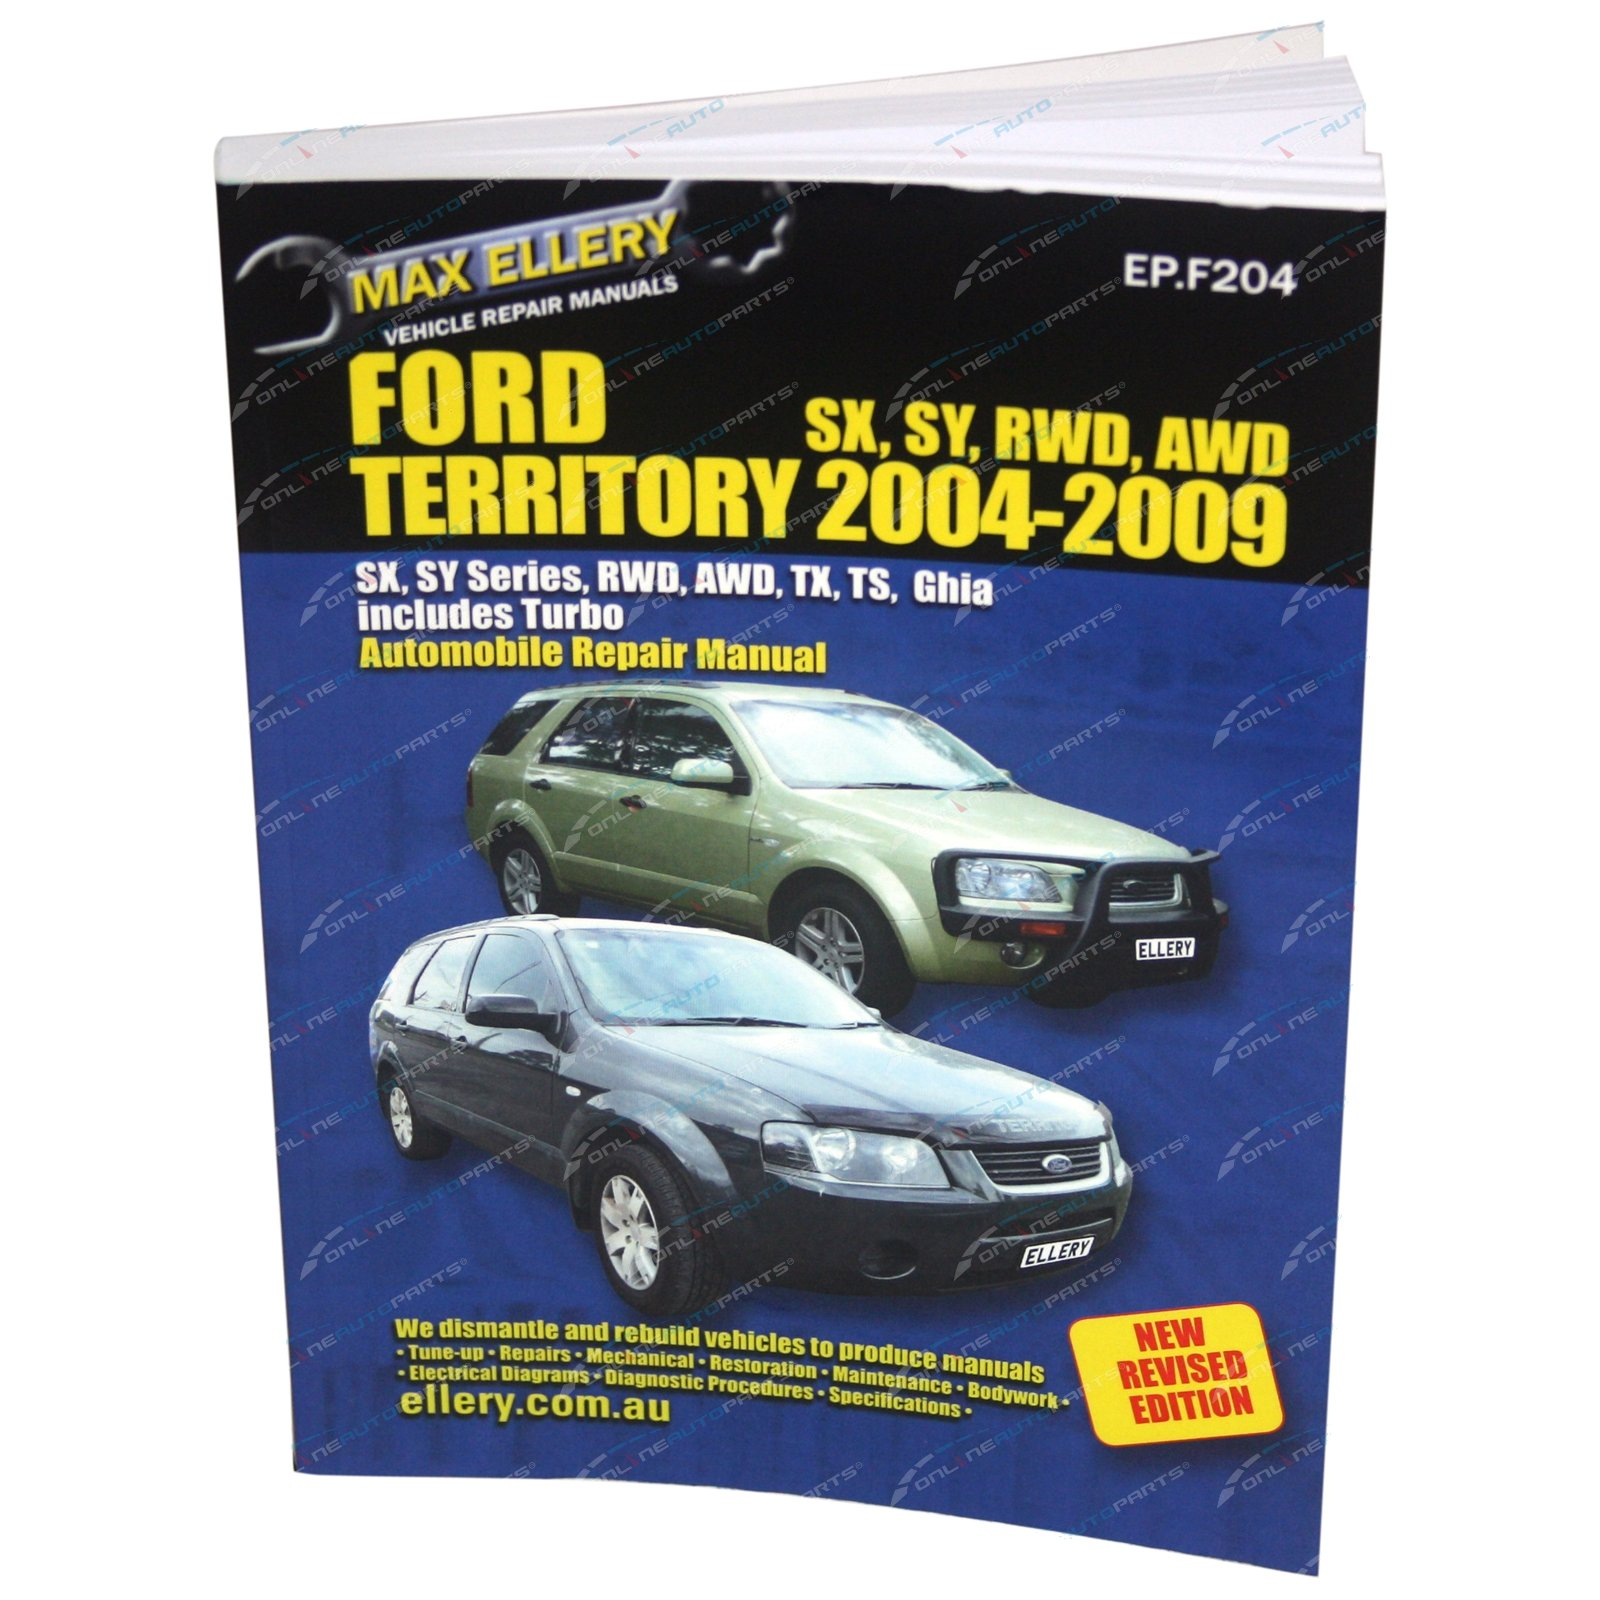 new workshop repair manual book ford territory 2004 2009 rwd awd 4x4 rh onlineautoparts com au 2014 Ford Territory 2013 Ford Territory